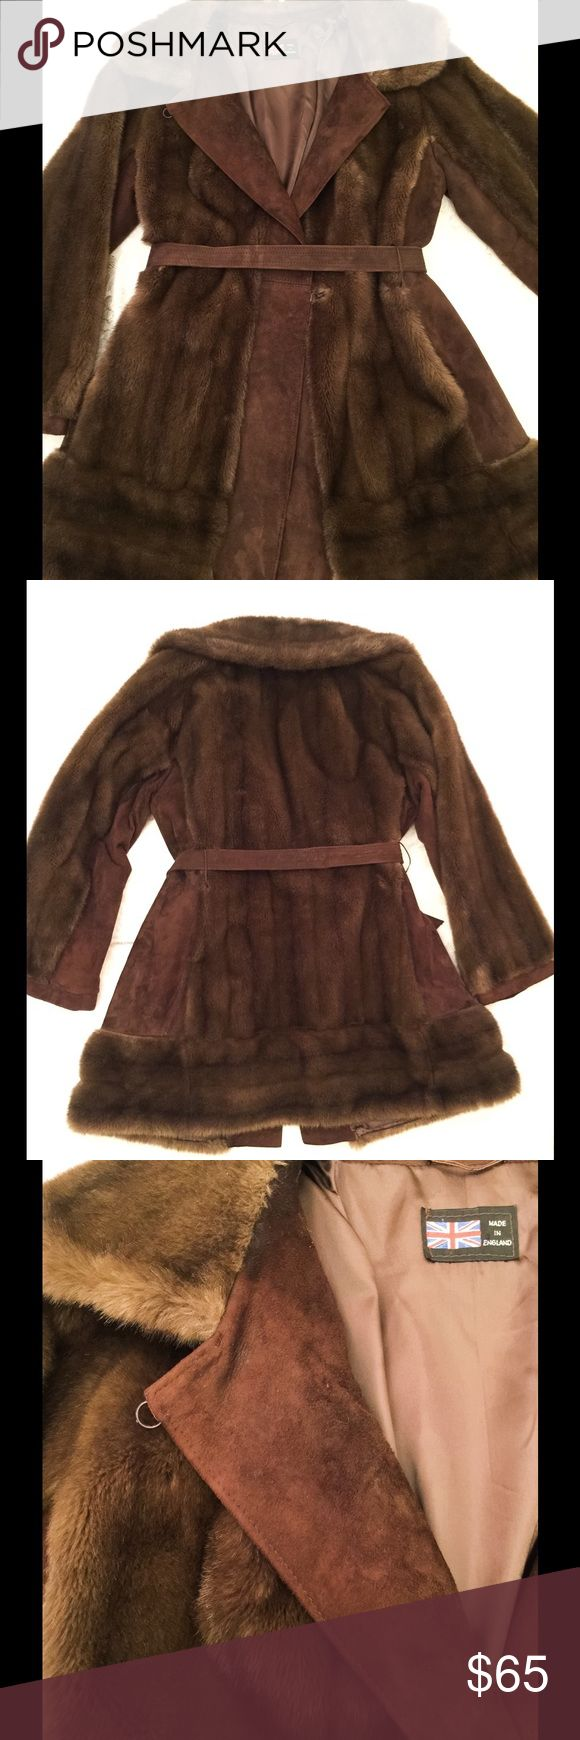 Faux Fur and Real Leather Coat Made in England, this sophisticated coat is sure to add style to your winter trip abroad or your yearly family outing to see the Christmas lights. It is soft and comfortable, but has a leather belt to cinch the waist and show off your curves. Great condition! London Leathers Jackets & Coats